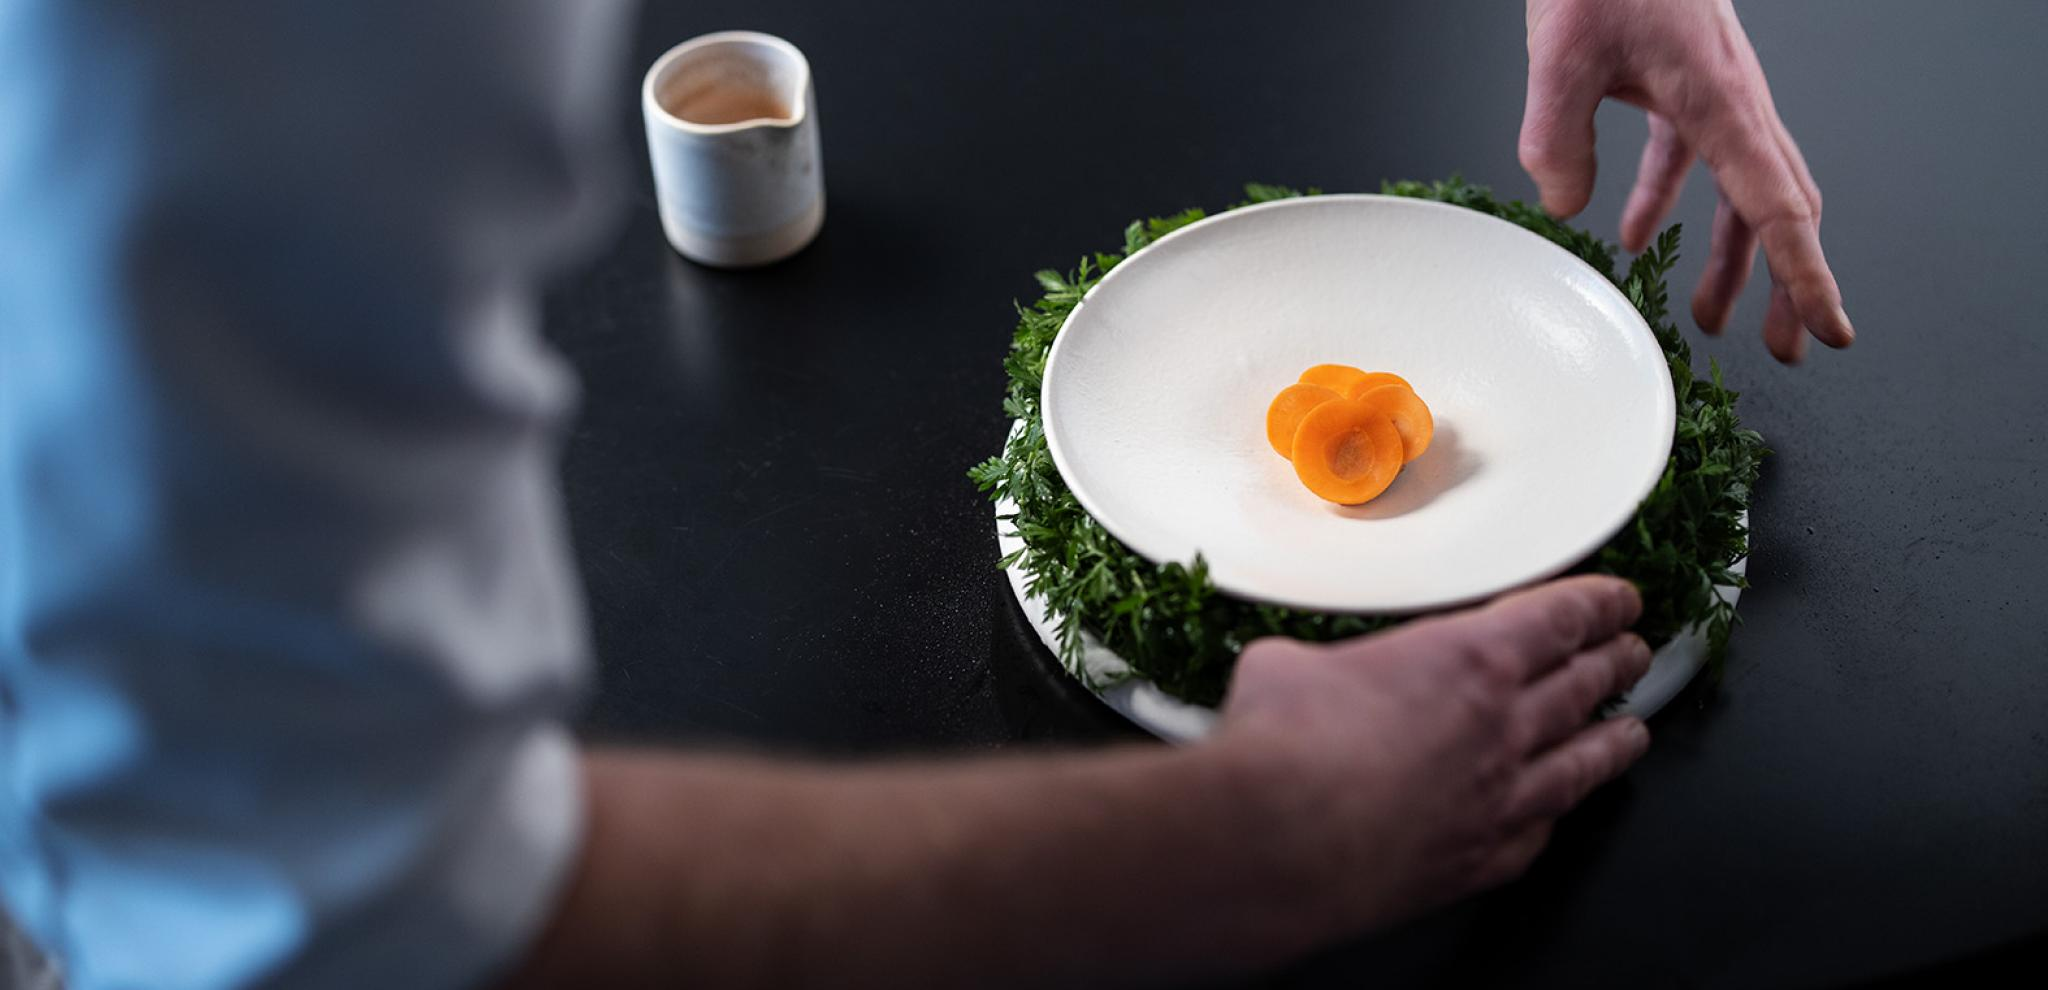 Chef hands around food dish on black table